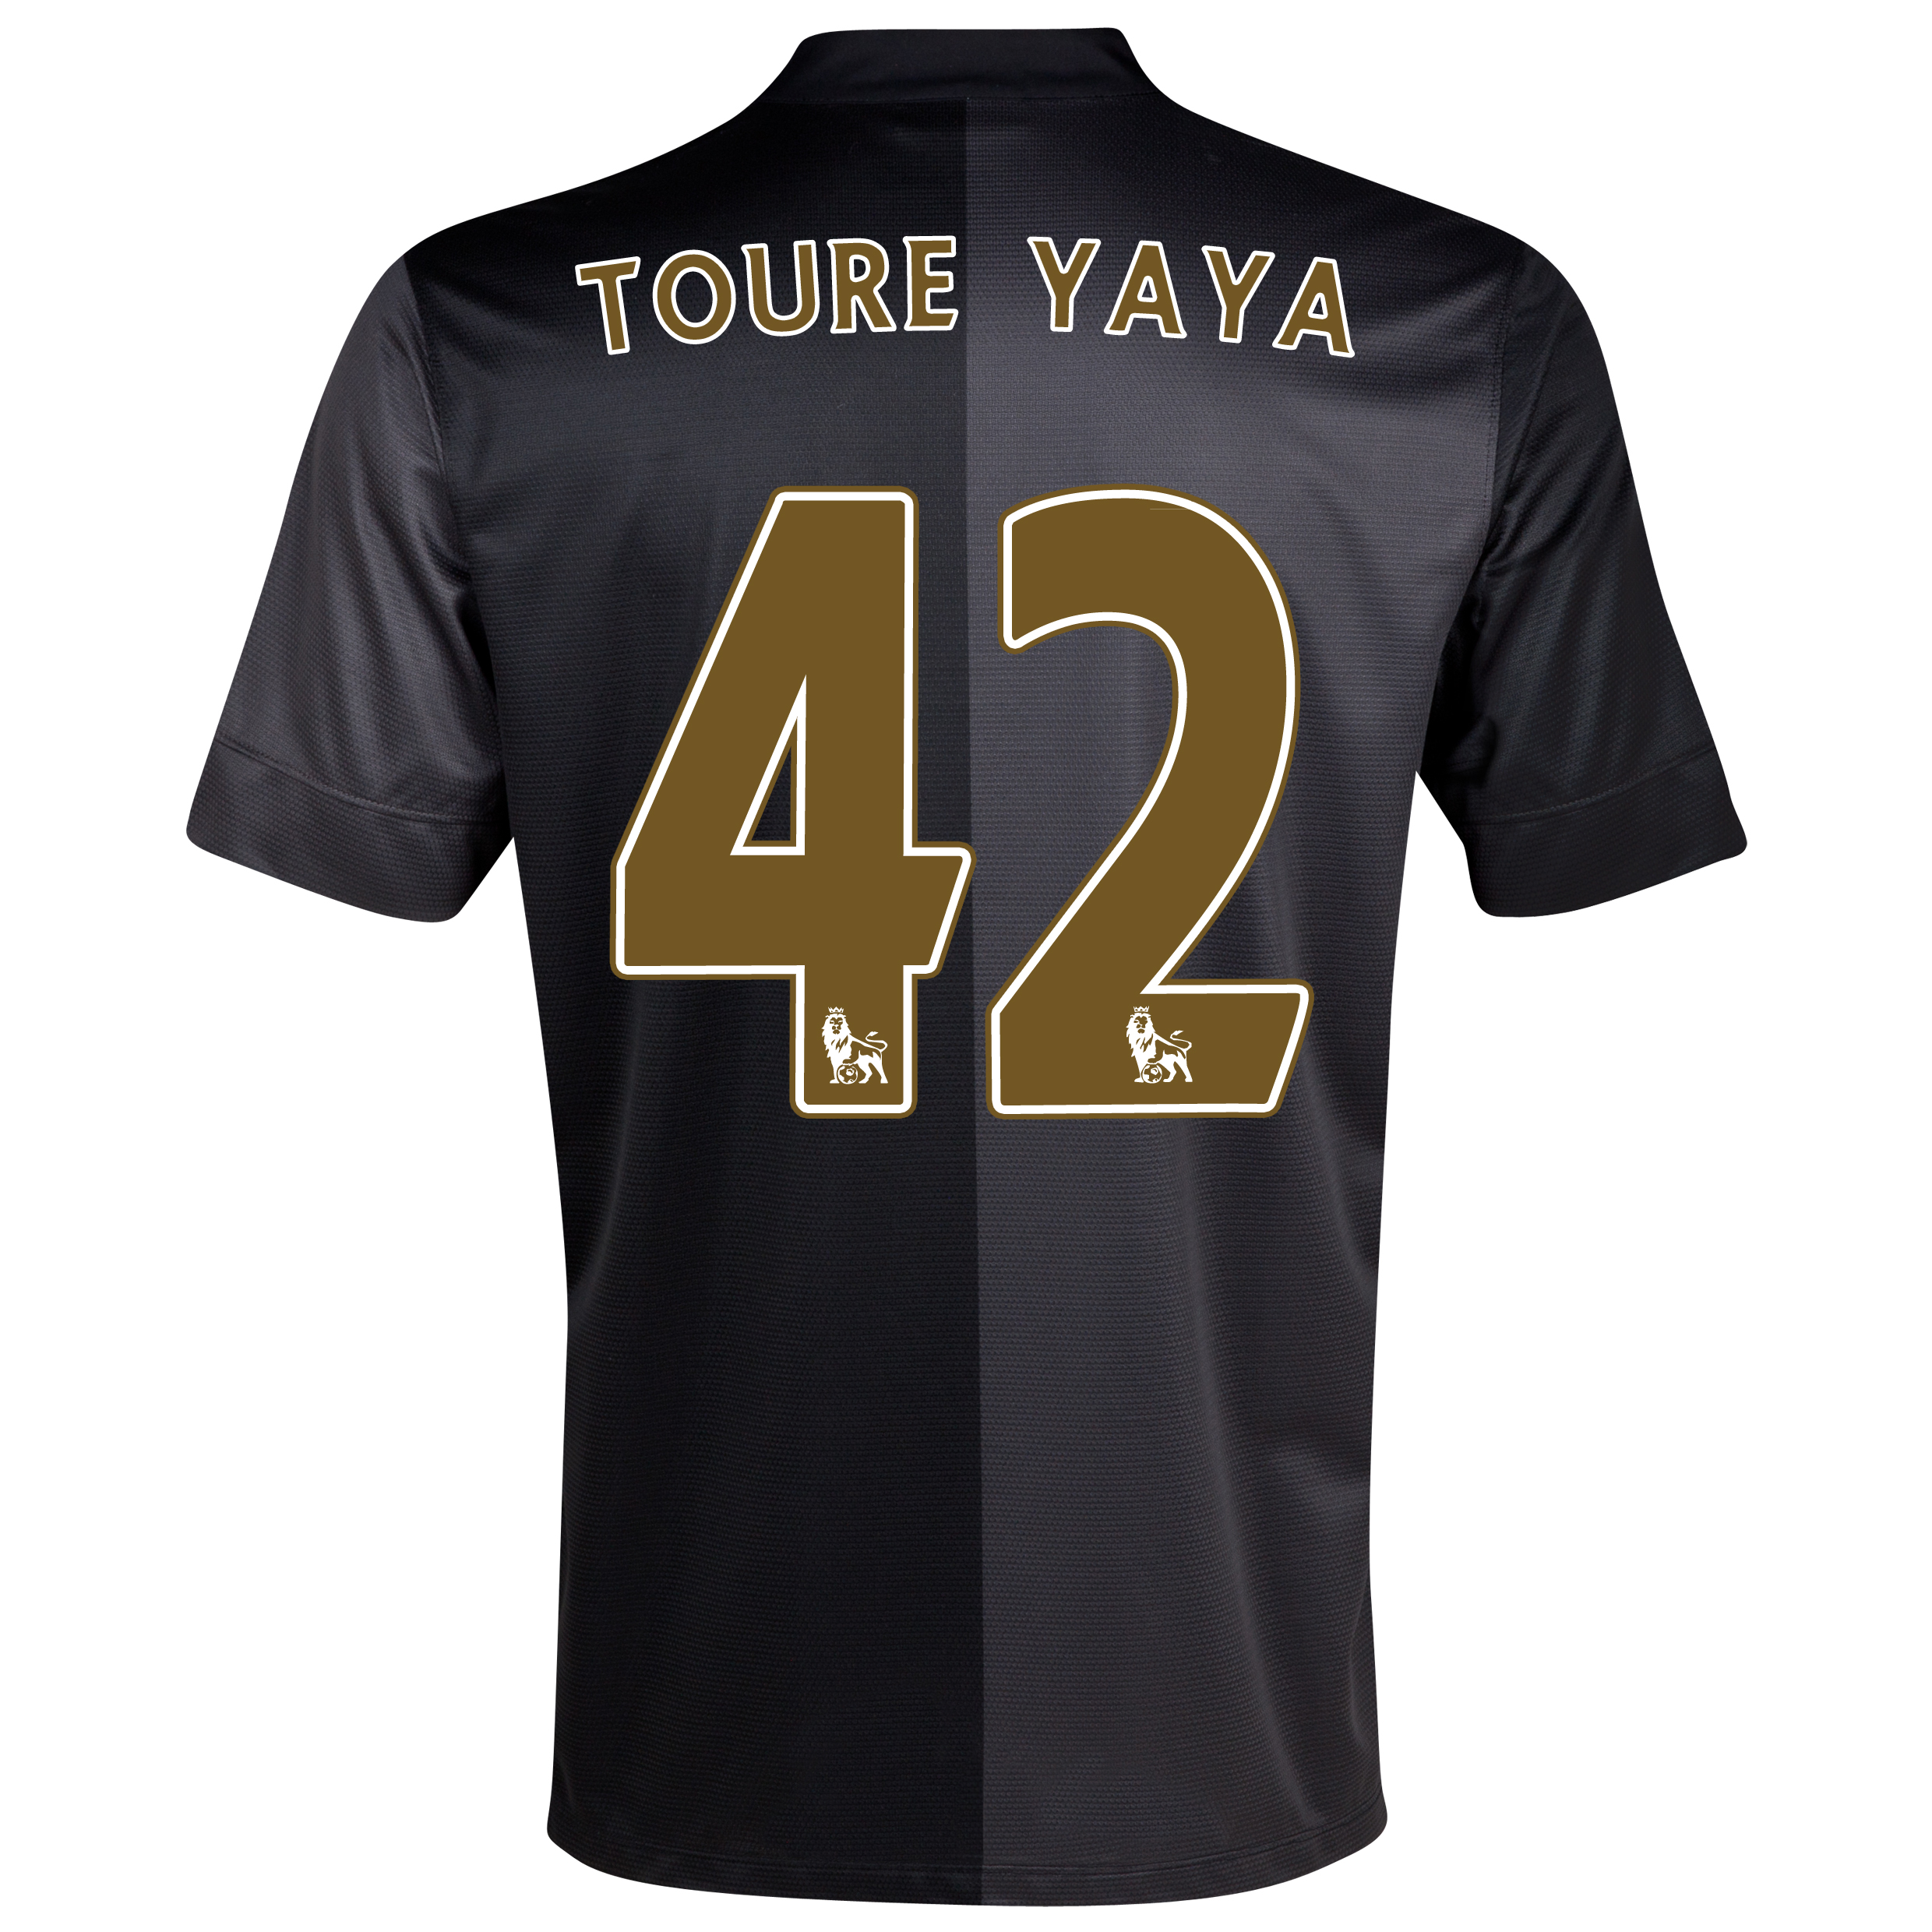 Manchester City Away Shirt 2013/14 with Toure Yaya 42 printing